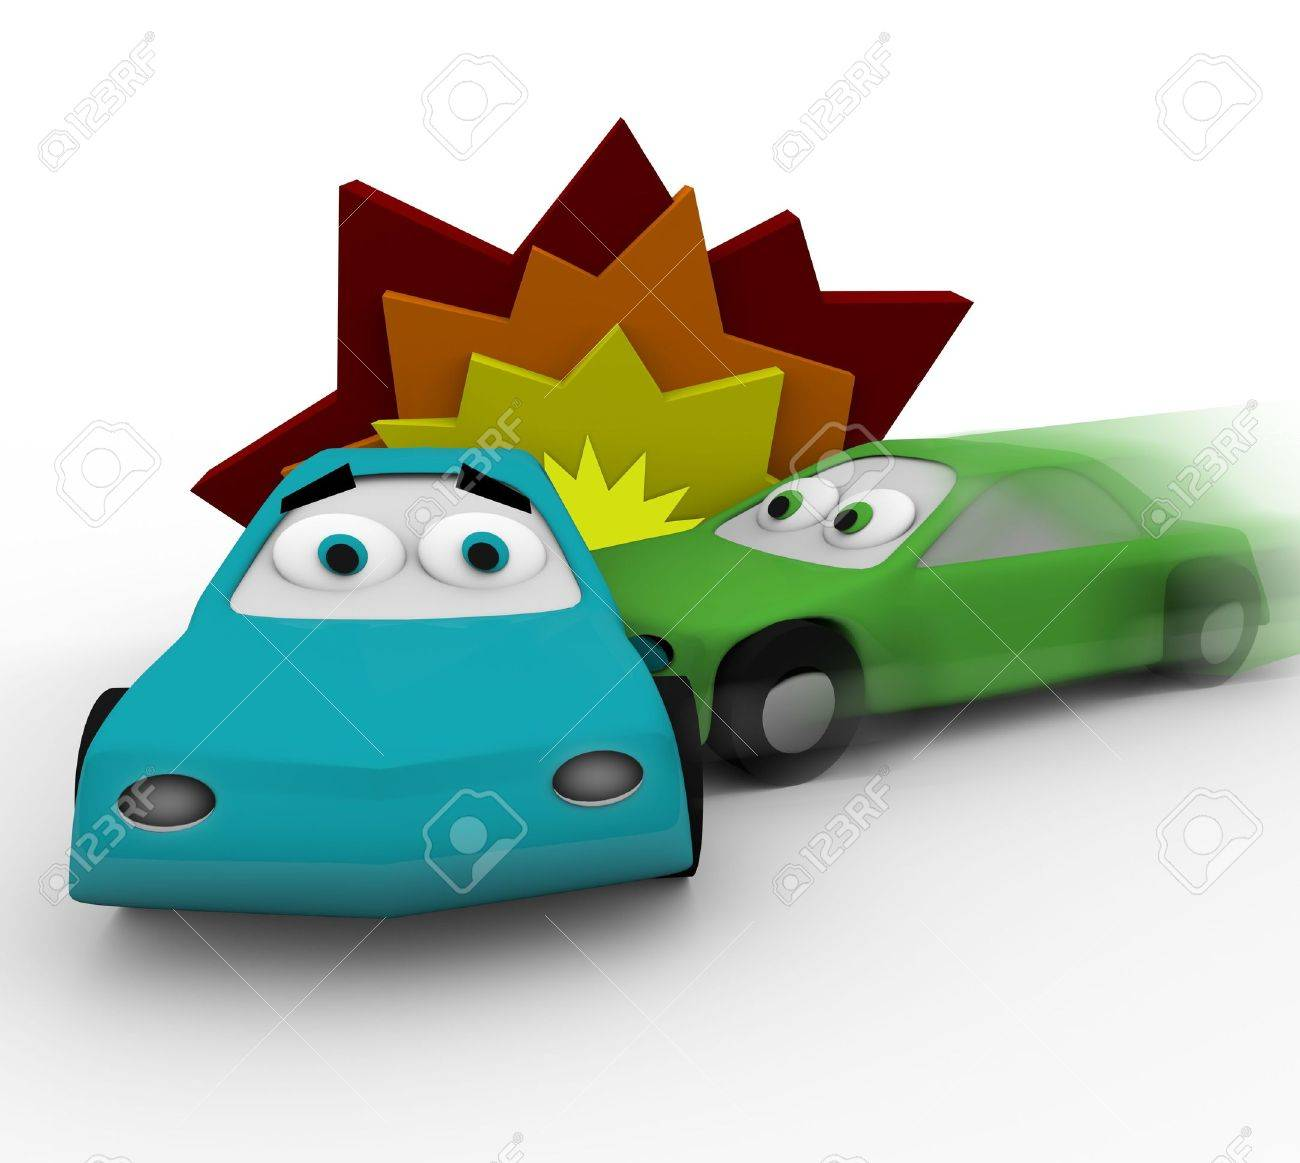 Two cars crash in a vehicle accident Stock Photo - 6892736